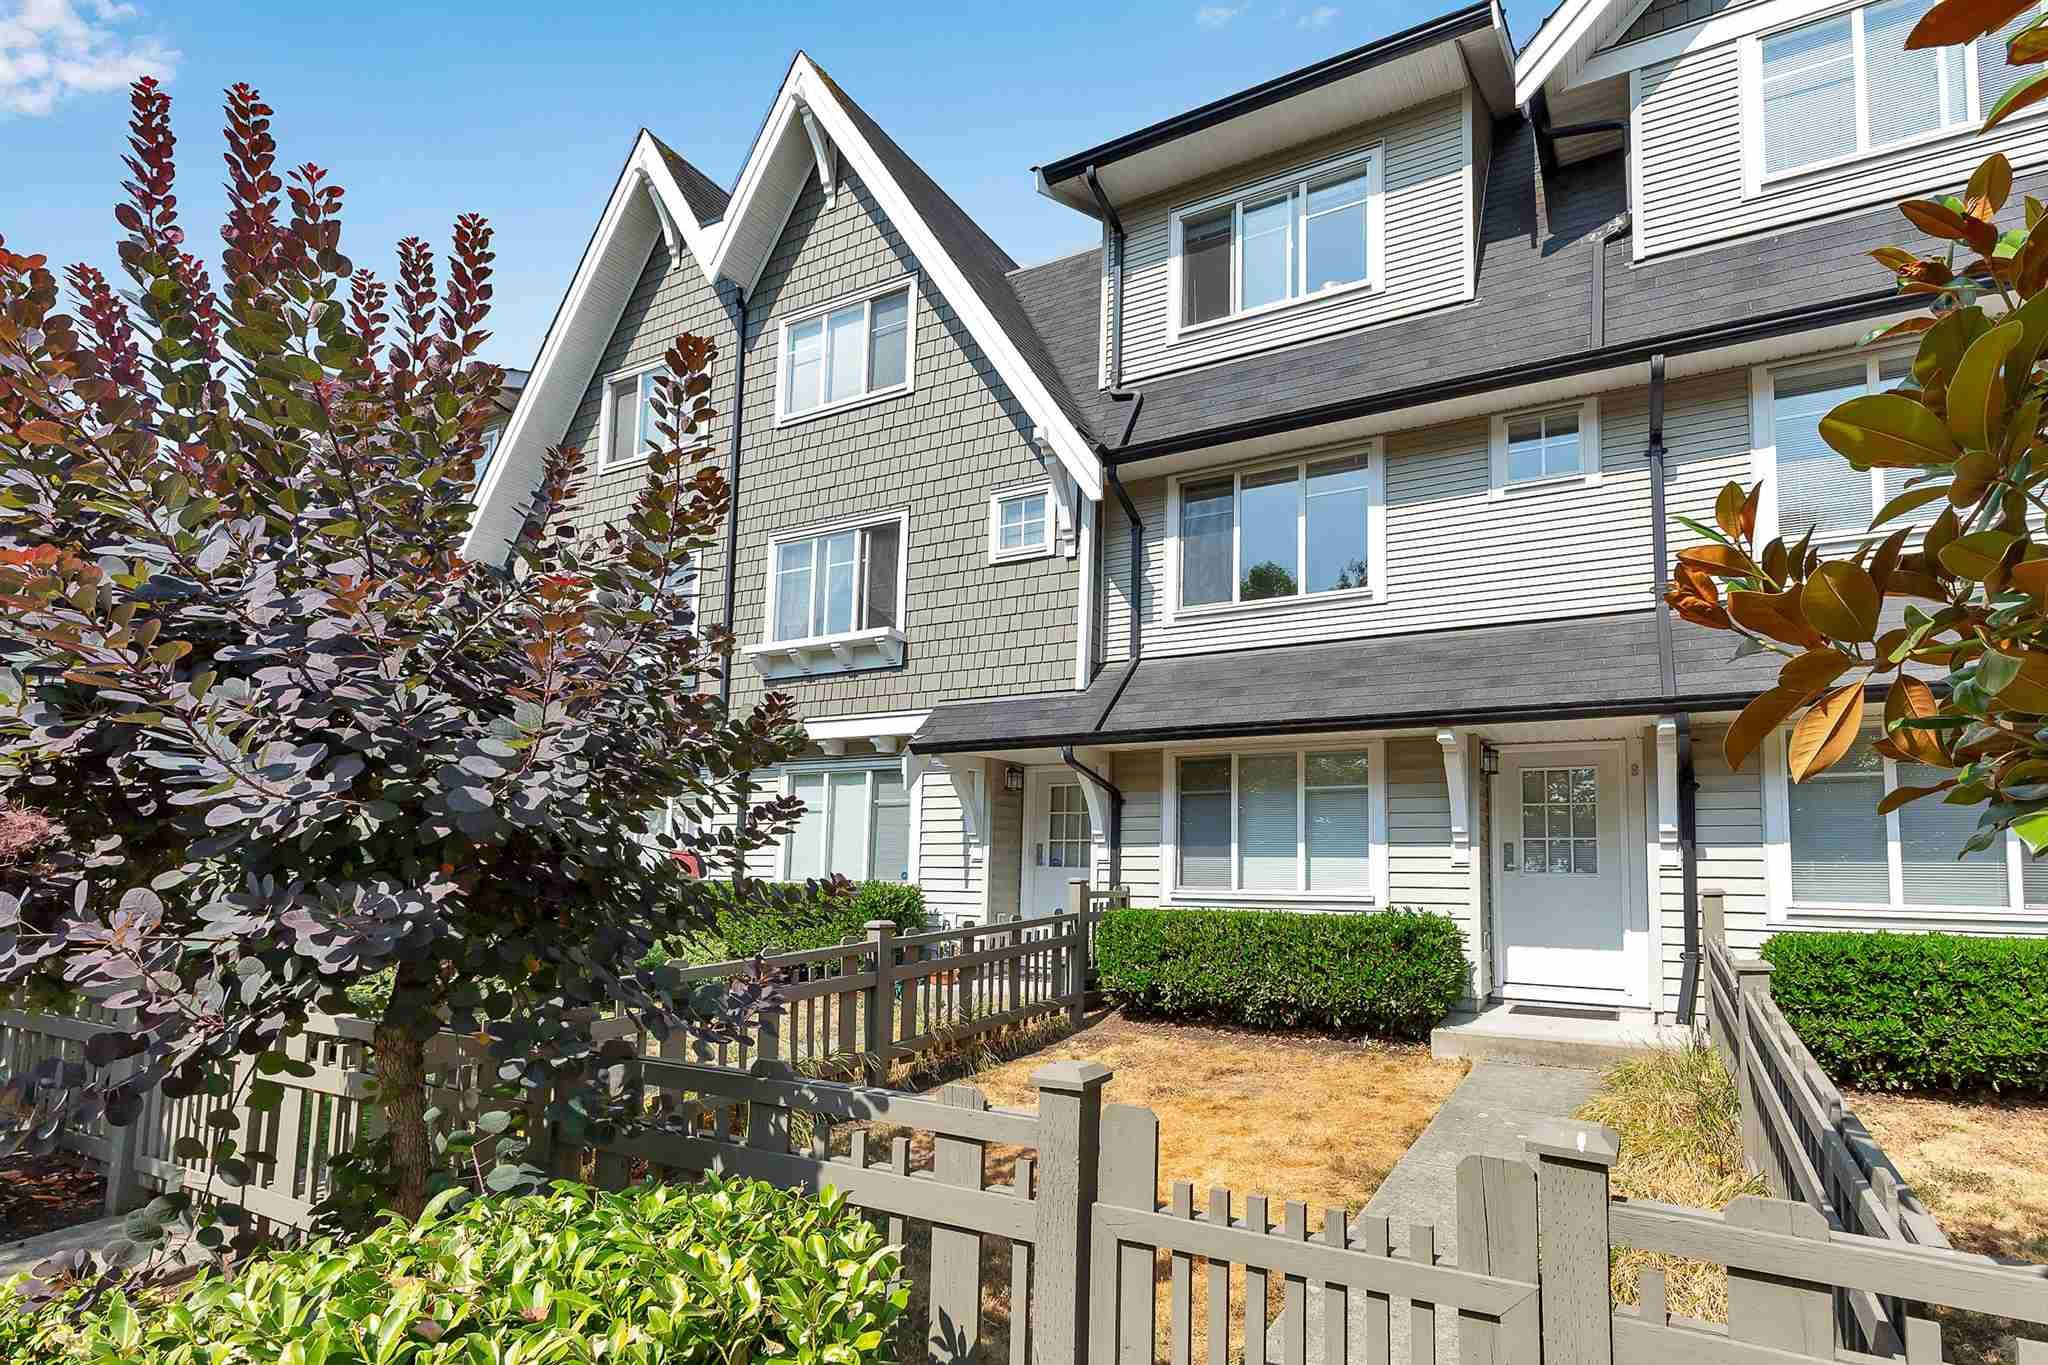 """Photo 2: Photos: 9 15871 85 Avenue in Surrey: Fleetwood Tynehead Townhouse for sale in """"Huckleberry"""" : MLS®# R2606668"""